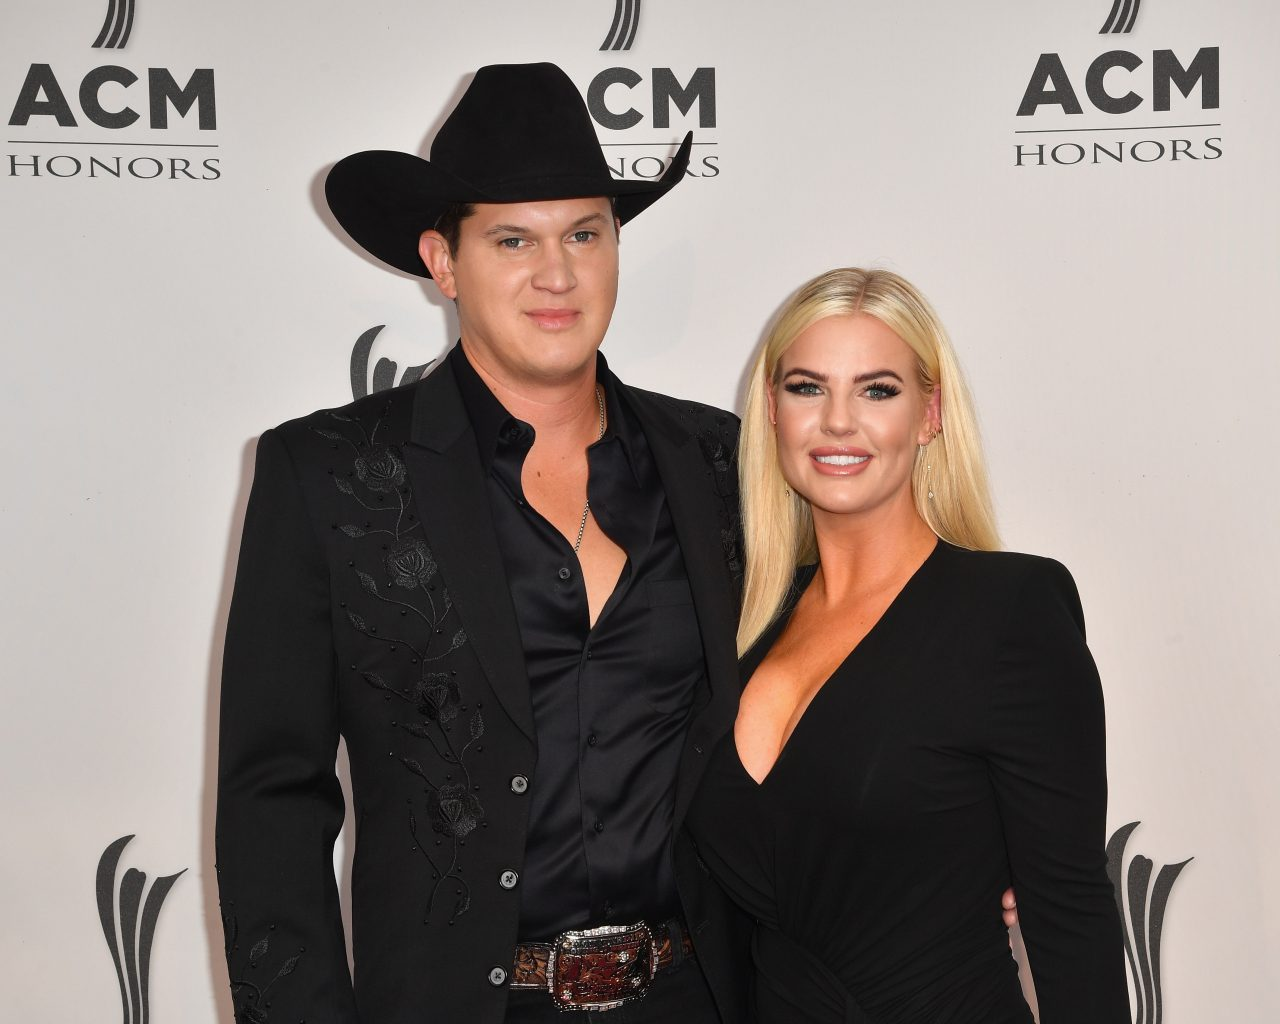 Jon Pardi Proposes to Longtime Girlfriend at the Ryman Auditorium